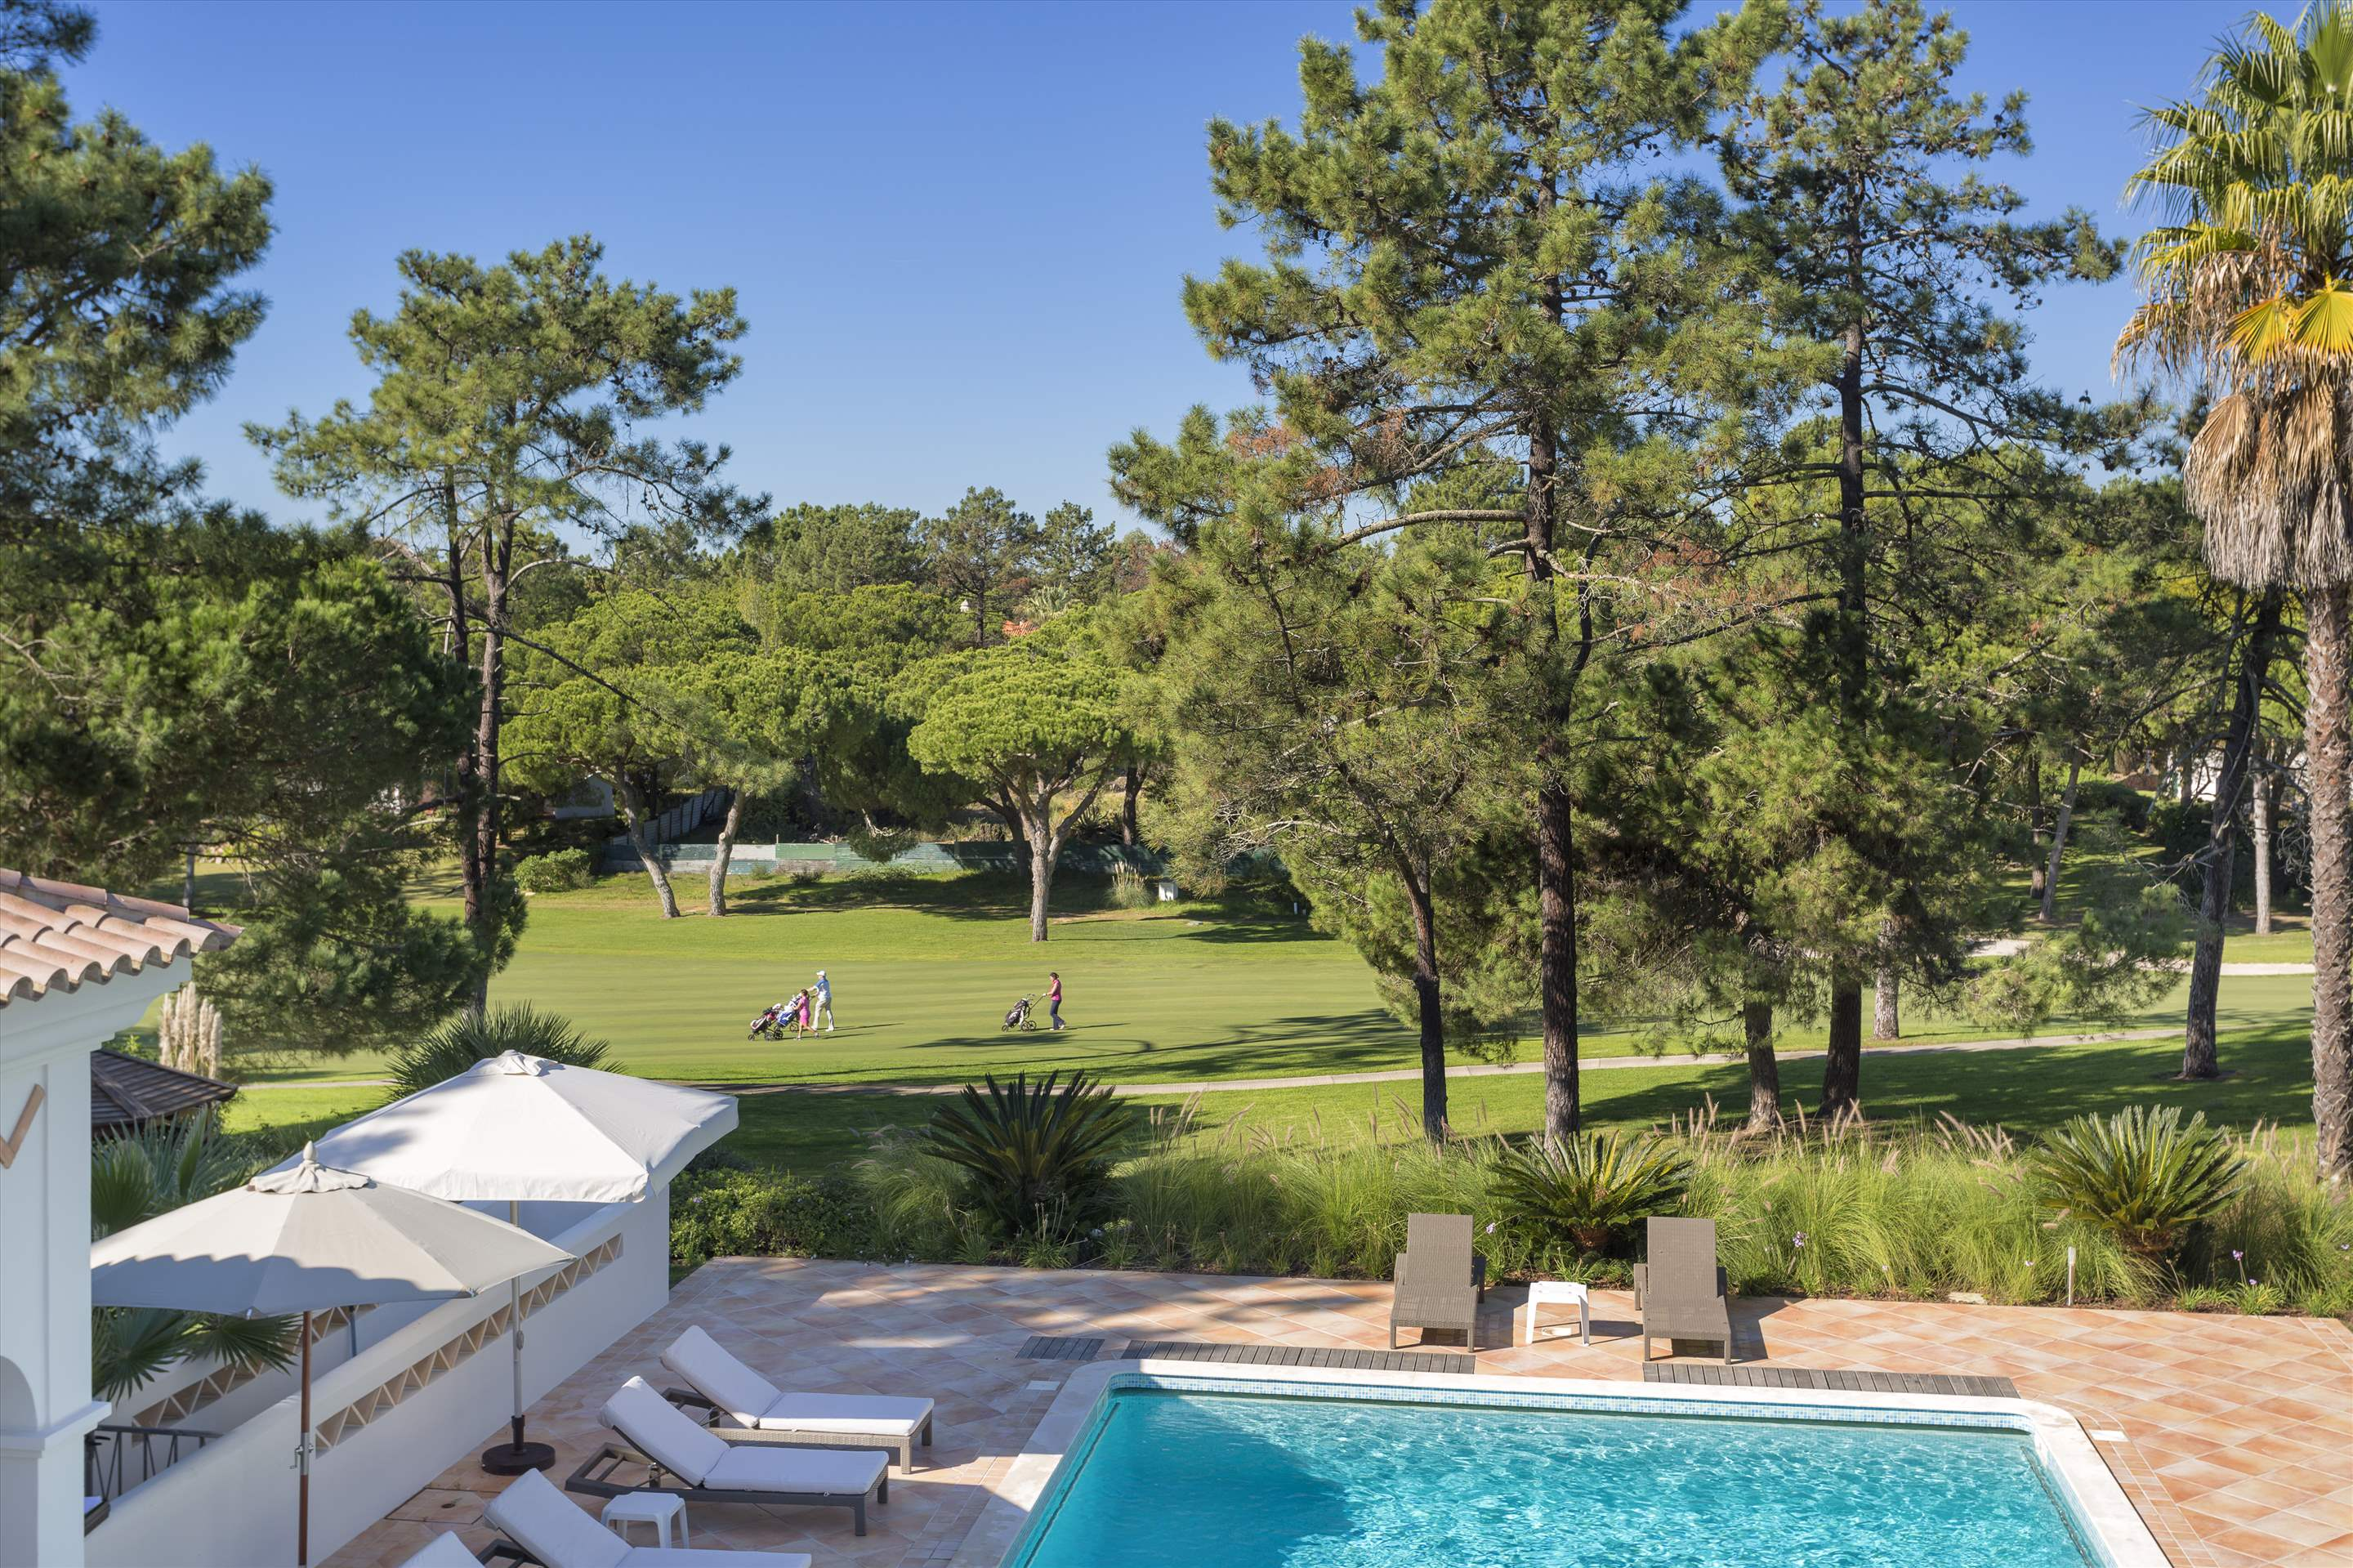 Villa Lantana 2, Main house & Annexe, 6 bedrooms, 6 bedroom villa in Quinta do Lago, Algarve Photo #29